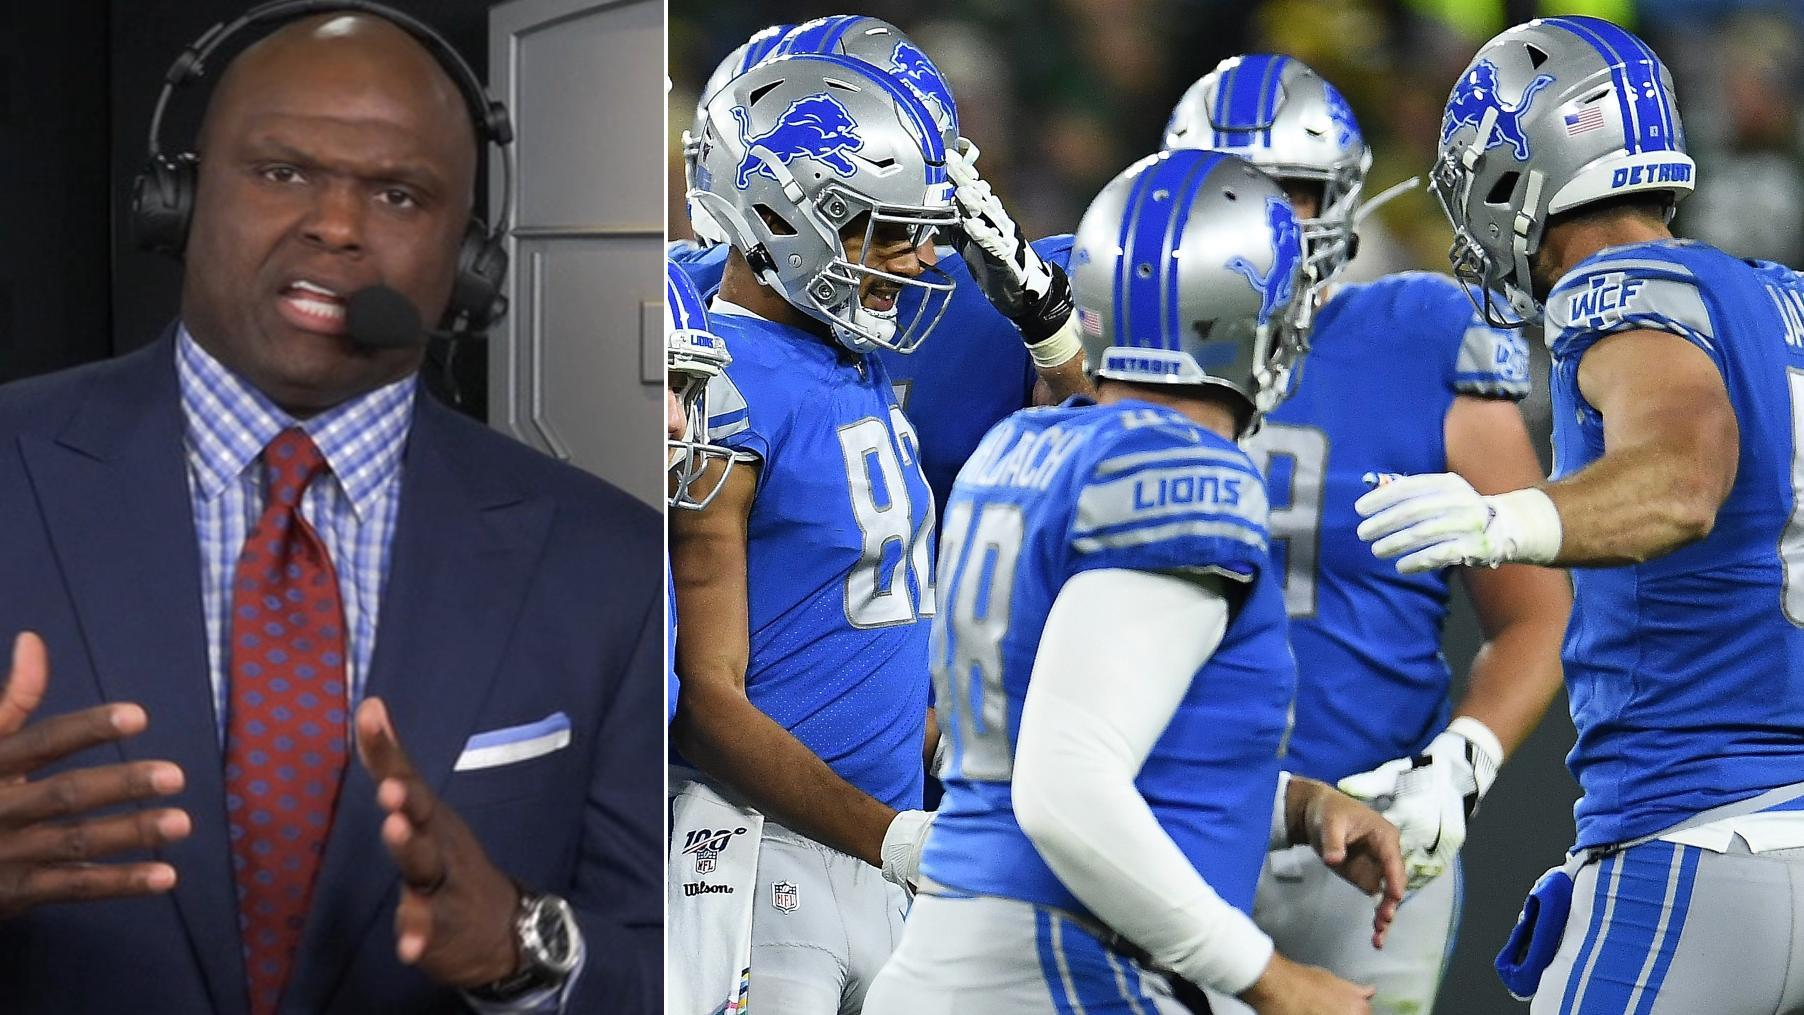 Booger: Lions will feel like the officials gave the game away